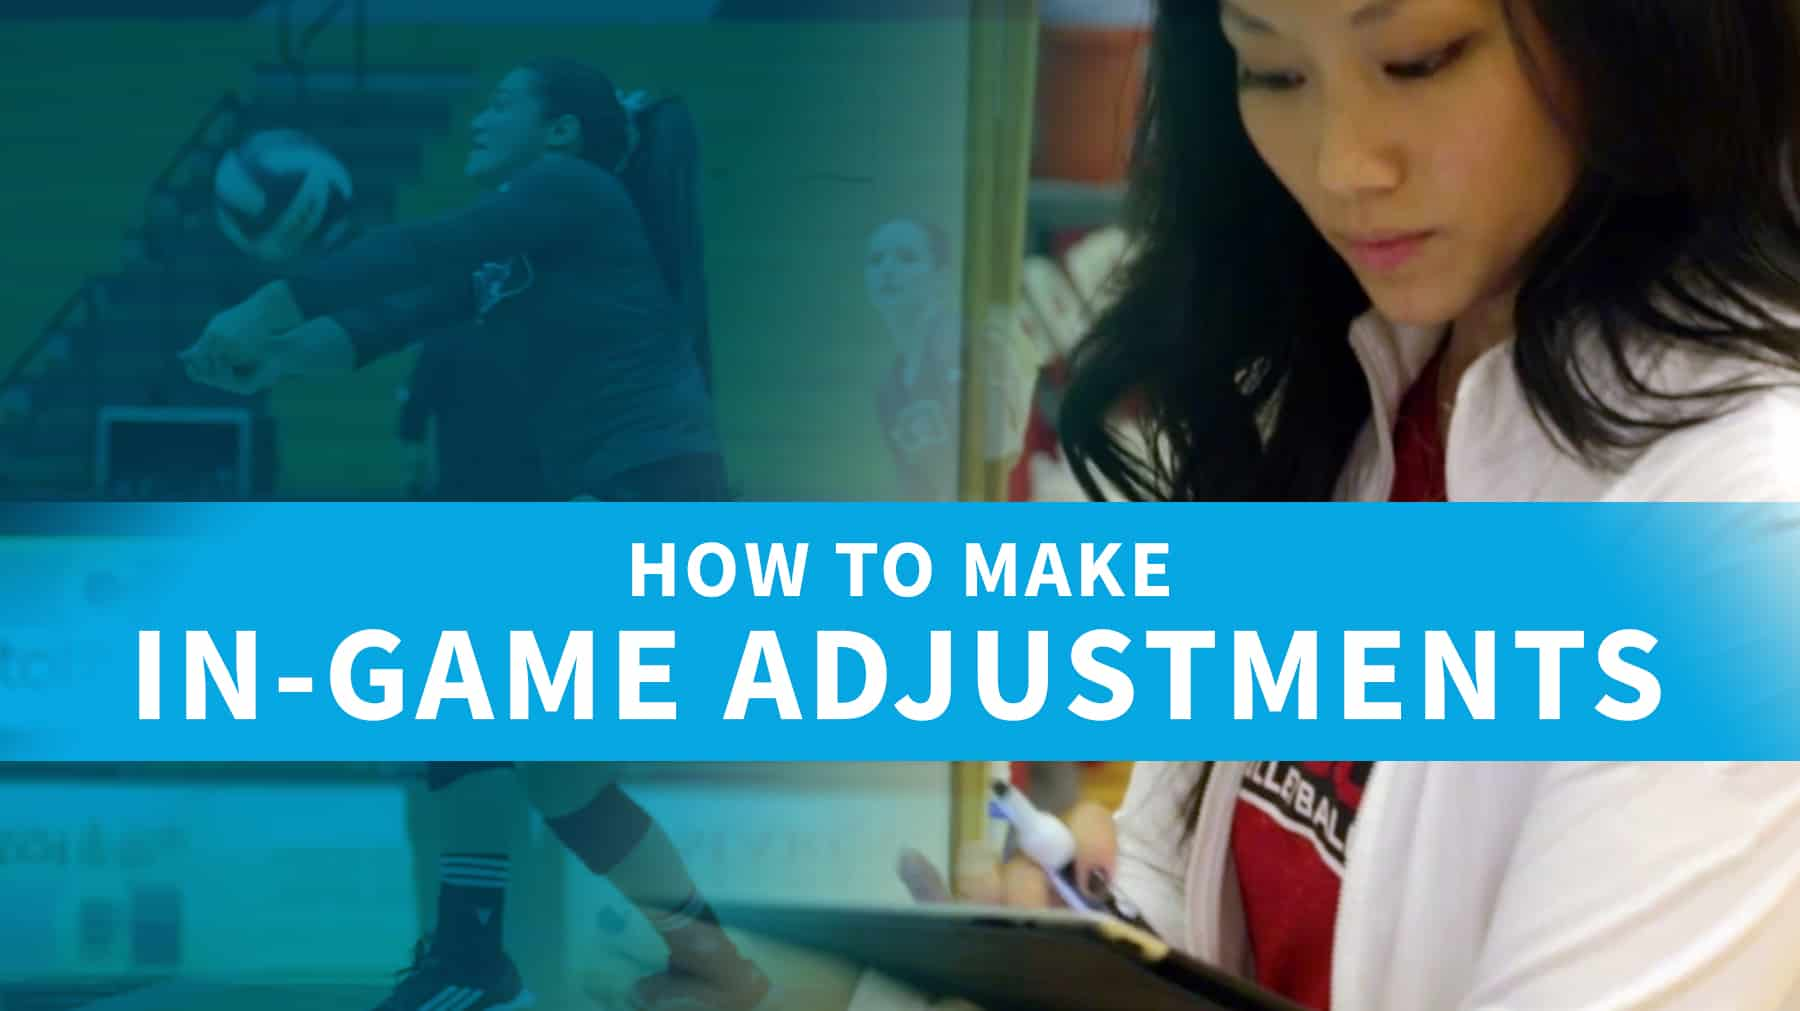 How to make in-game adjustments